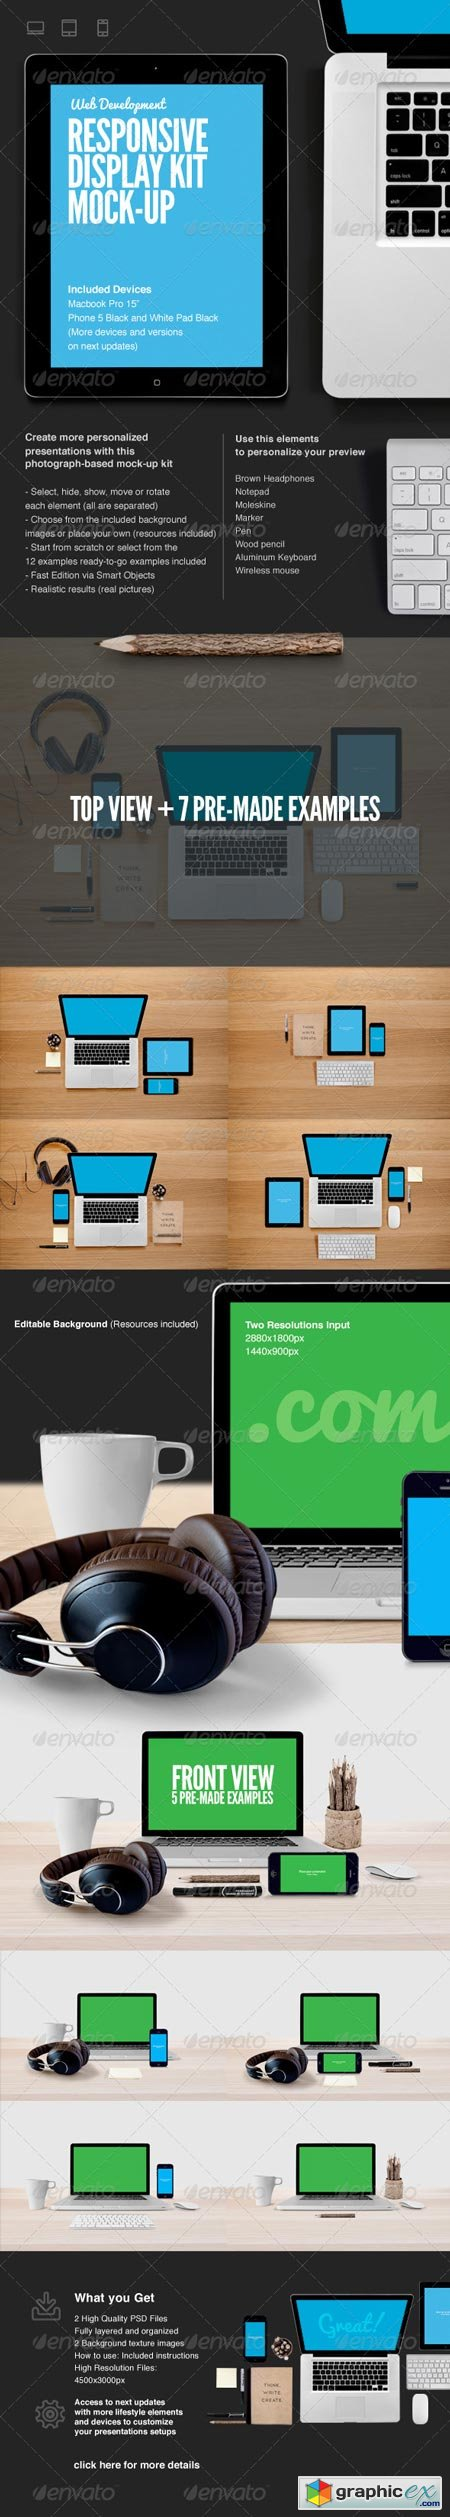 Responsive Web Display Kit Mock-Up 6619319